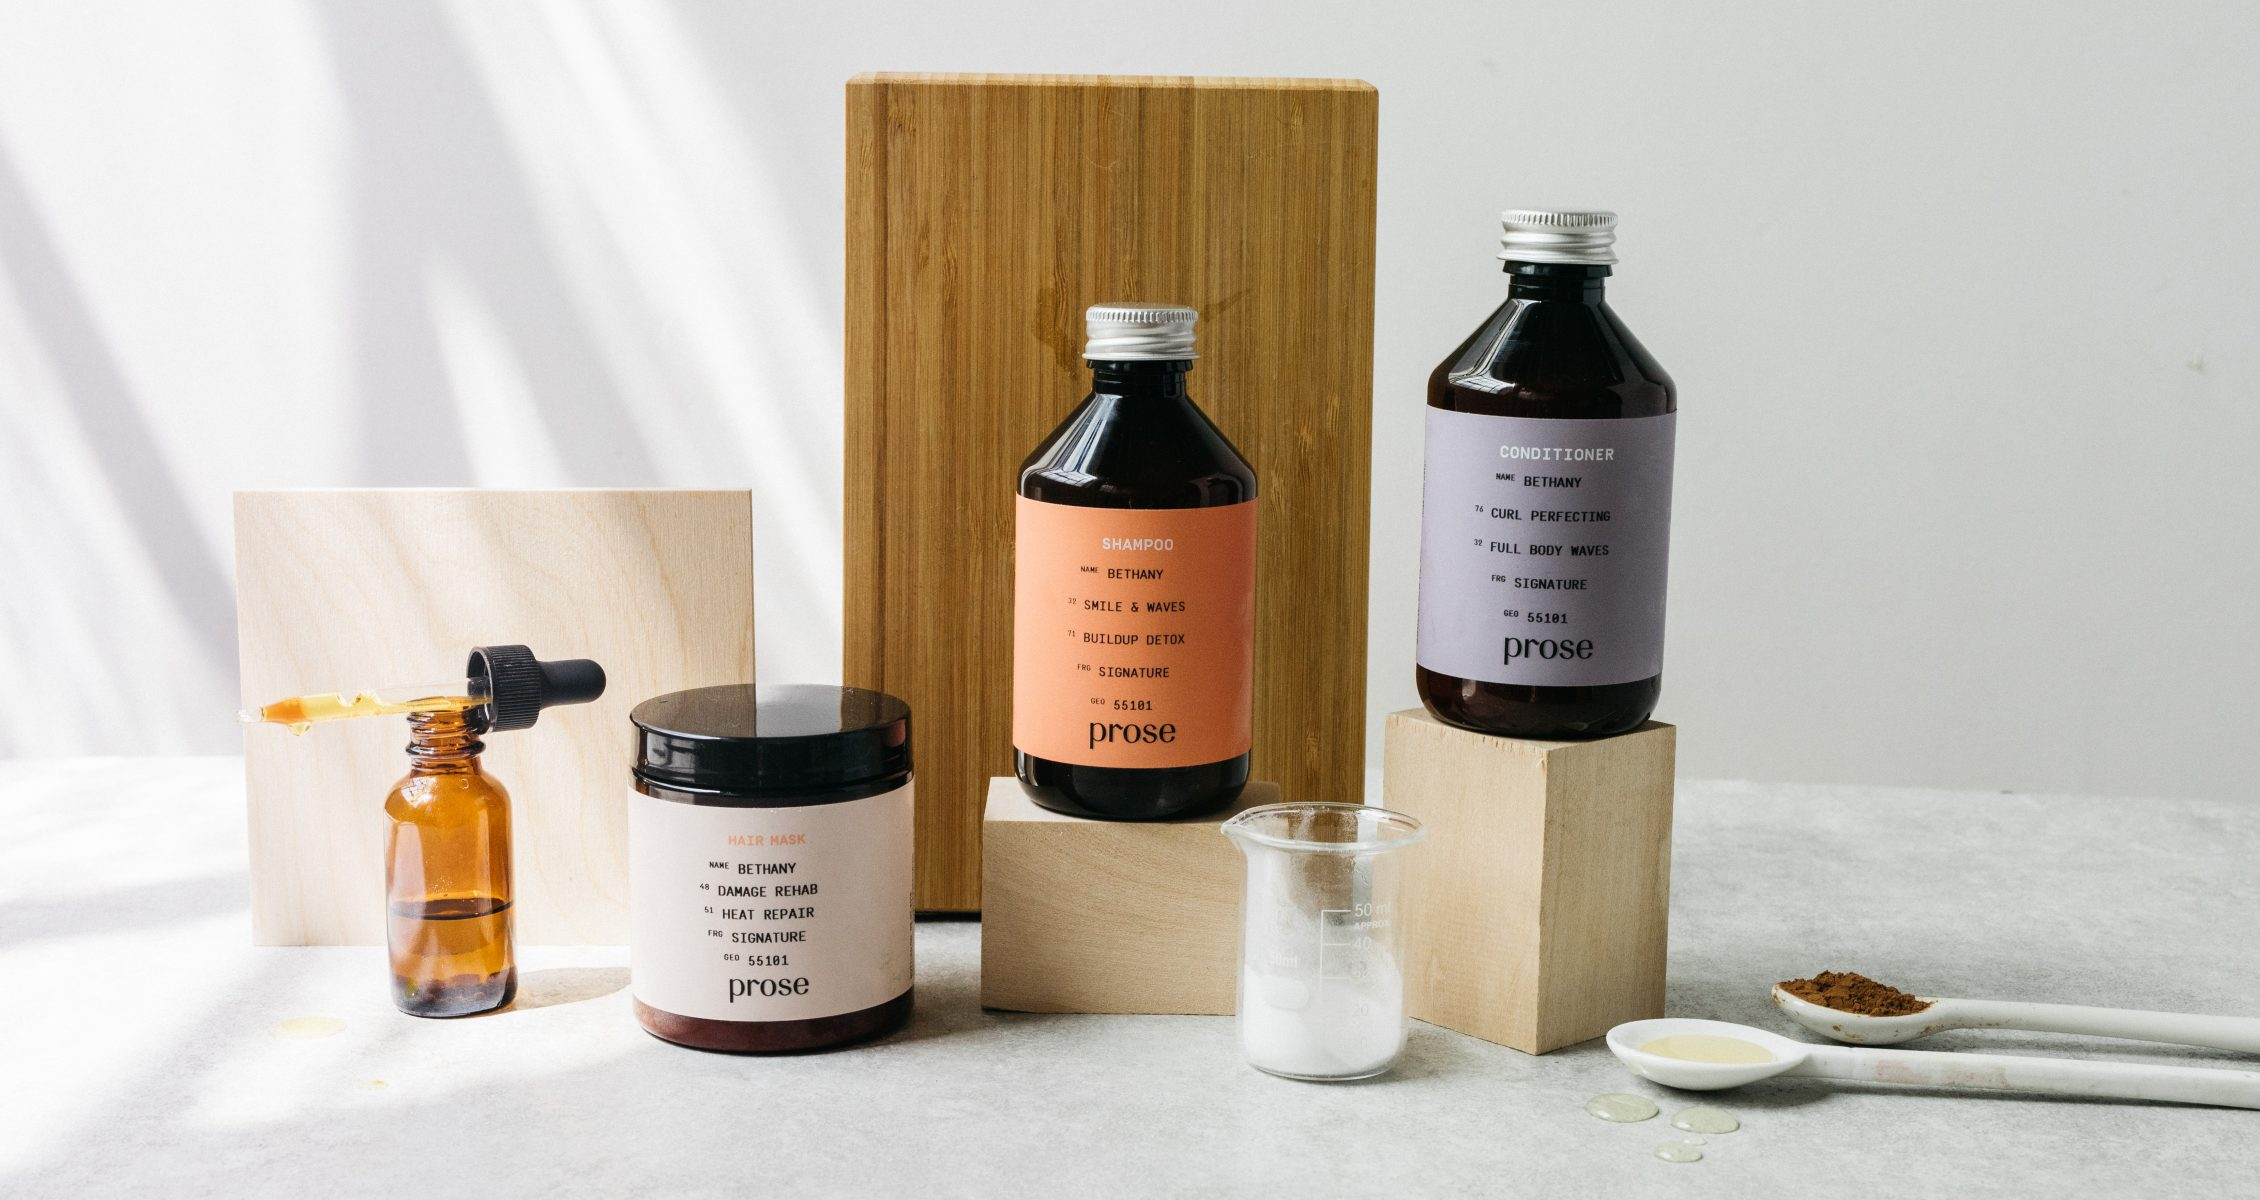 Prose influencer product shot with ingredients